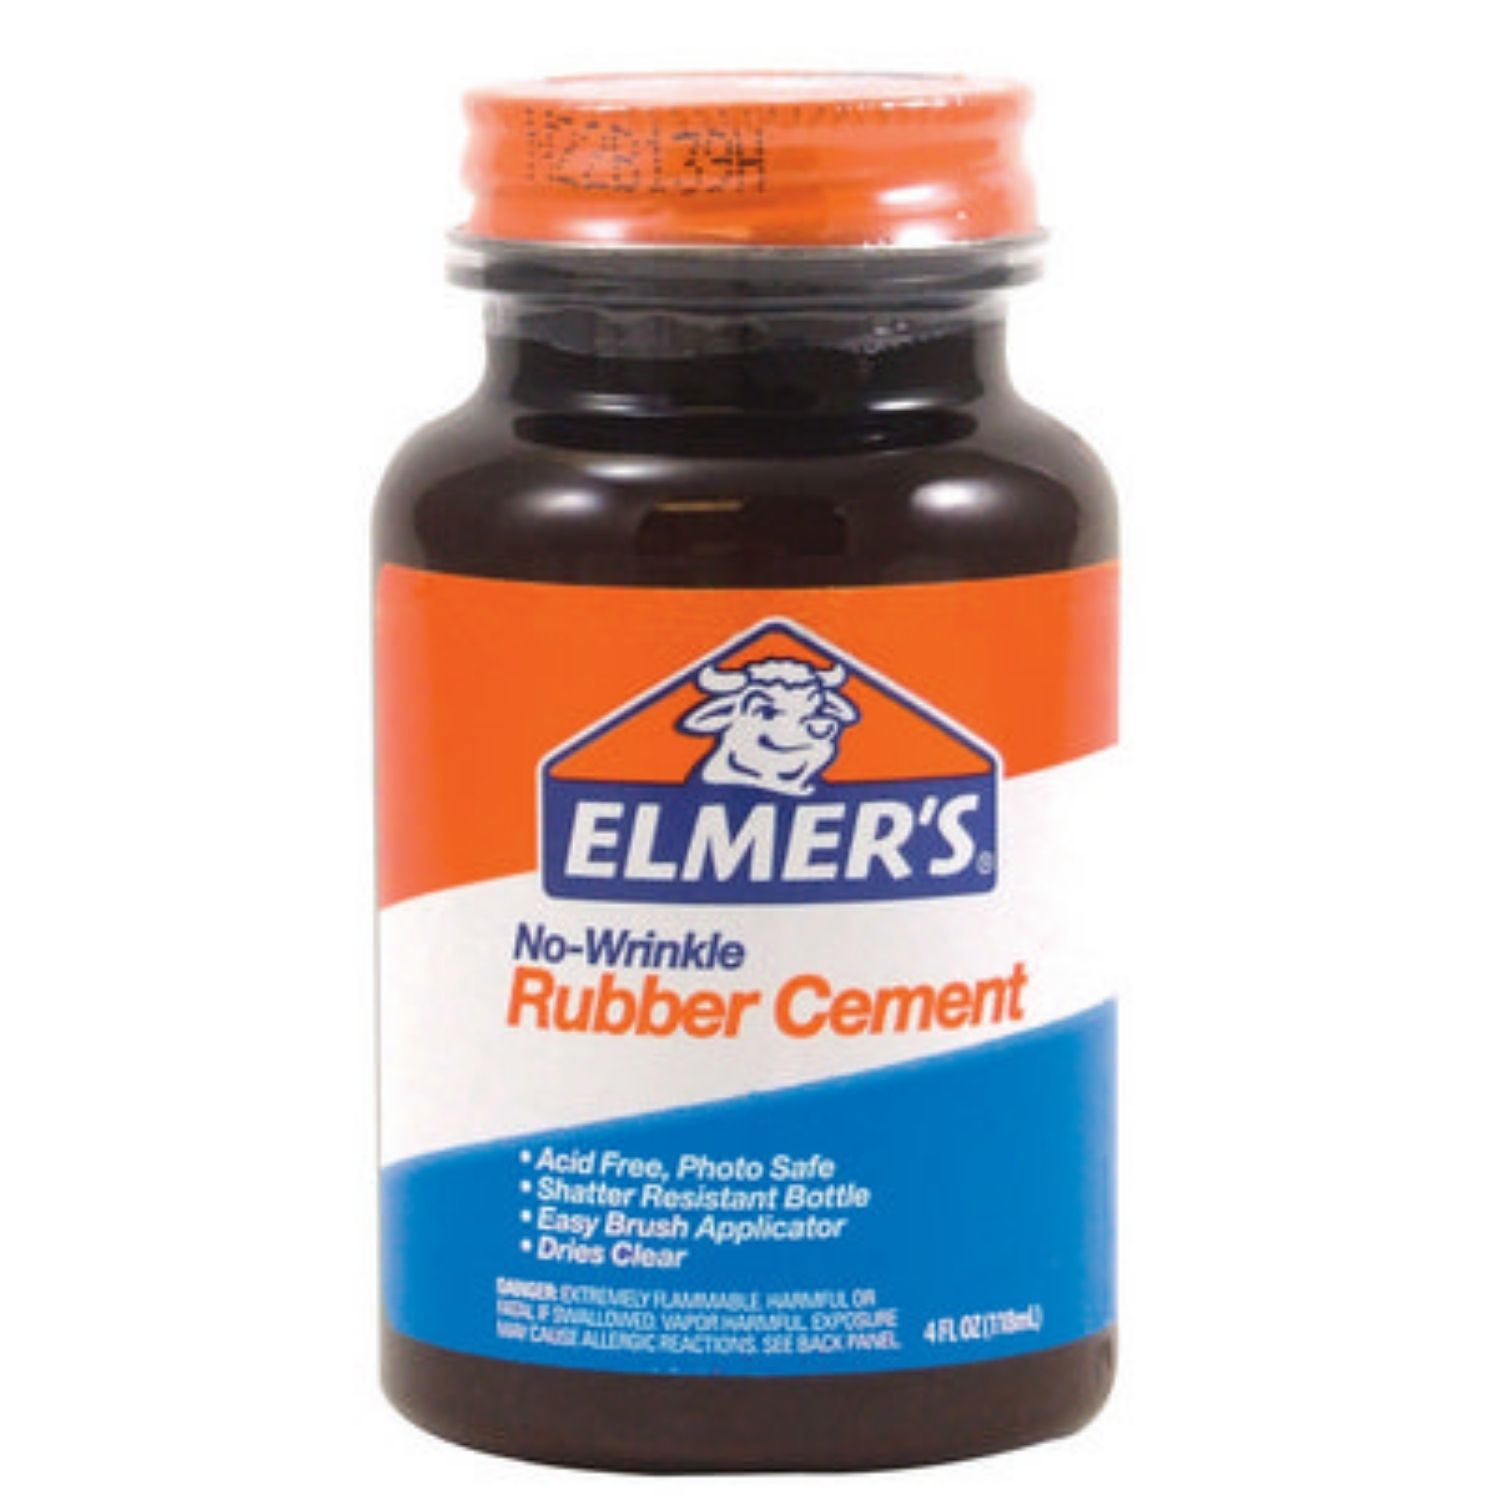 Image For RUBBER CEMENT 8OZ ELMERS